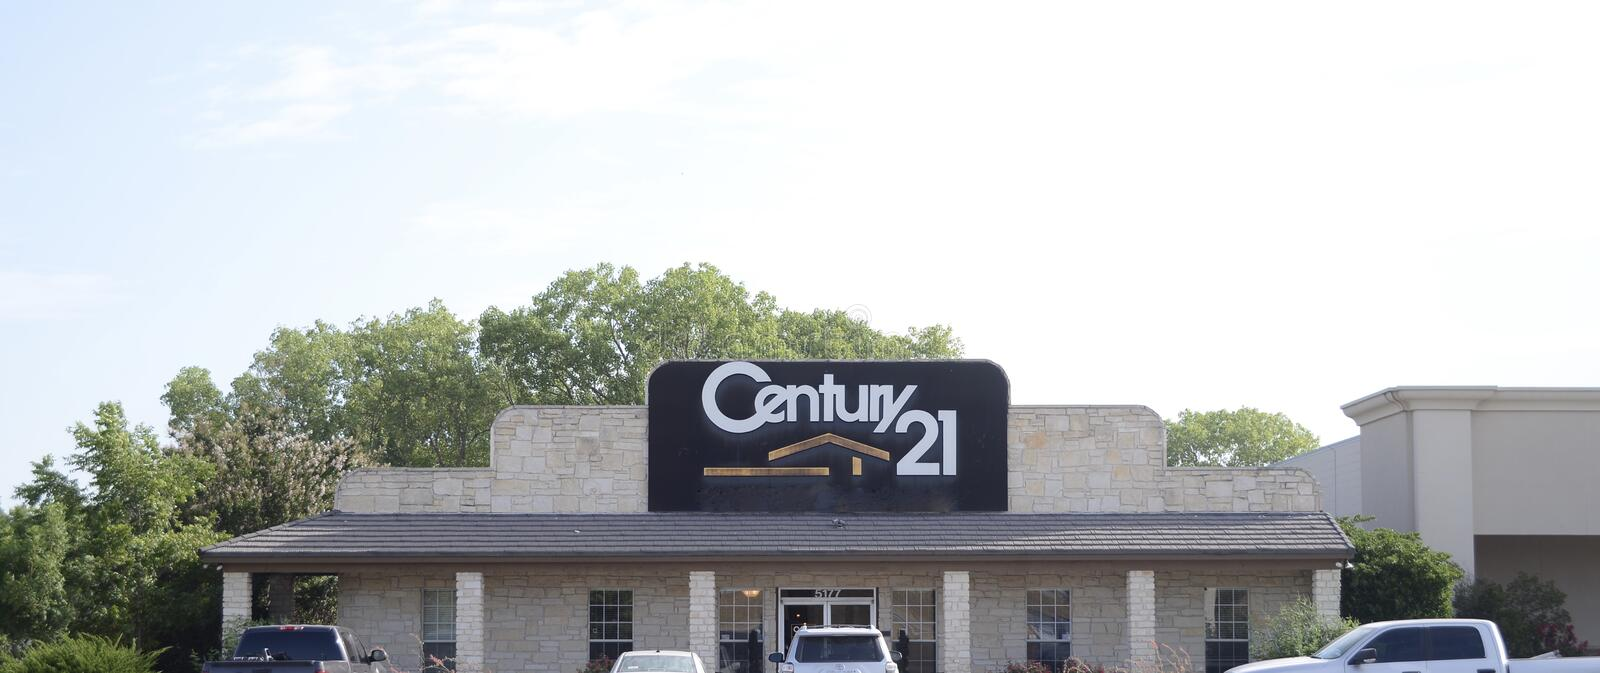 Century 21 Real Estate Company. Century 21 Real Estate is an American real estate agent franchise company founded in 1971, that sells homes, commercial property royalty free stock photography